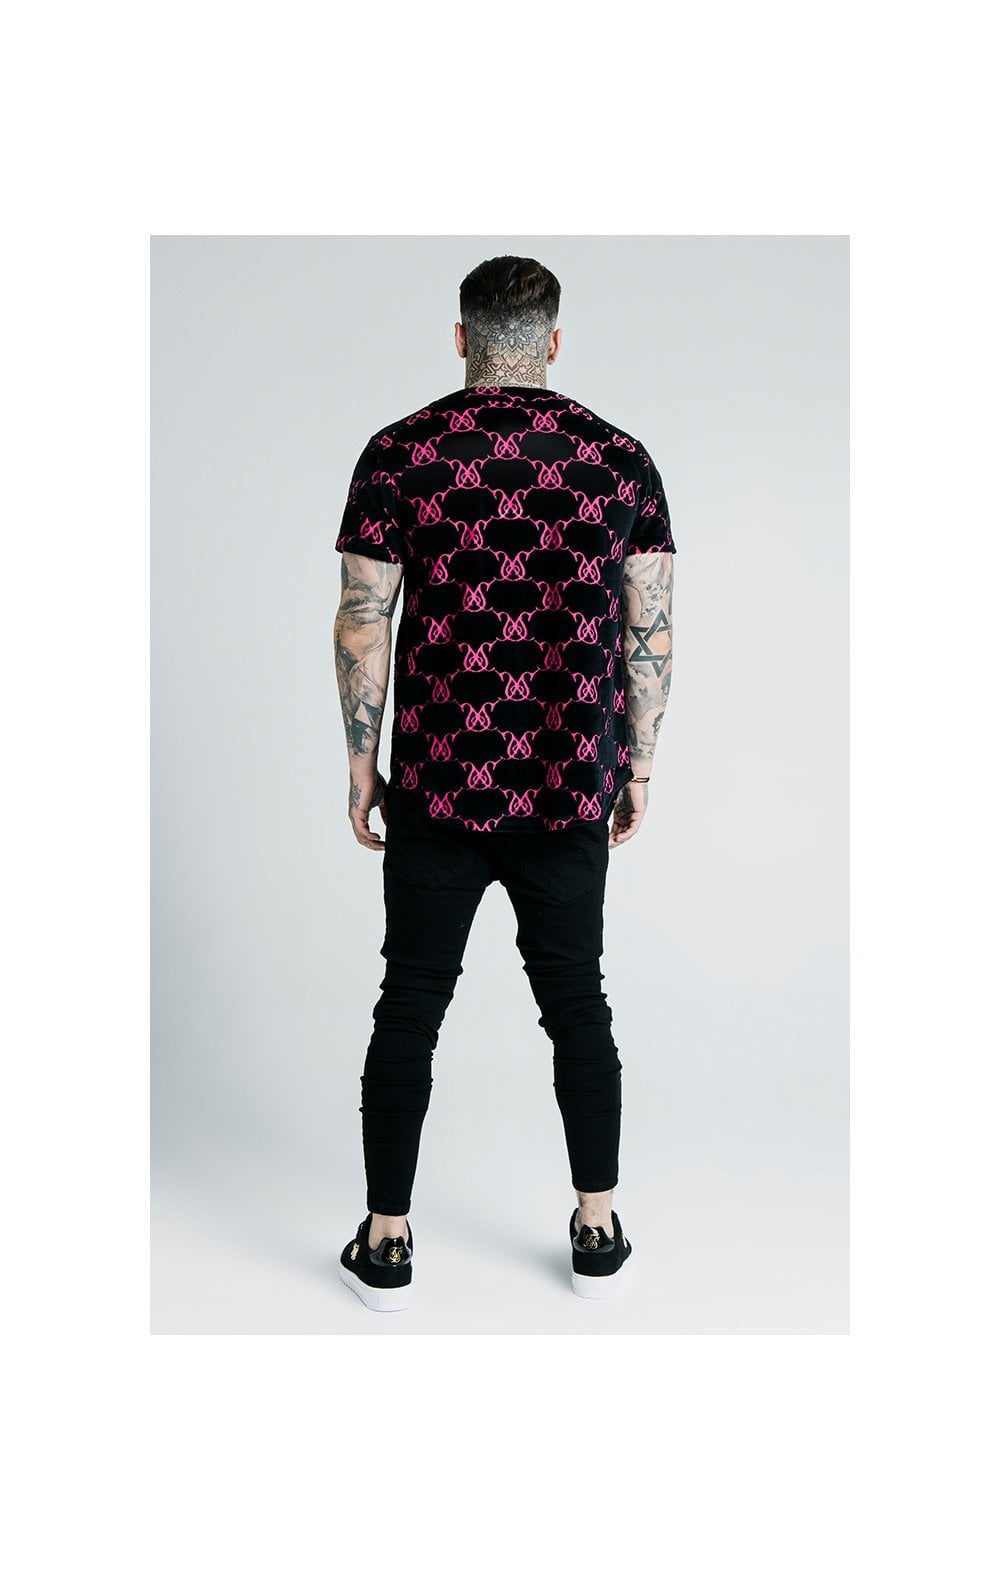 Load image into Gallery viewer, SikSilk x Dani Alves Low Rise Prestige Denims - Black (6)